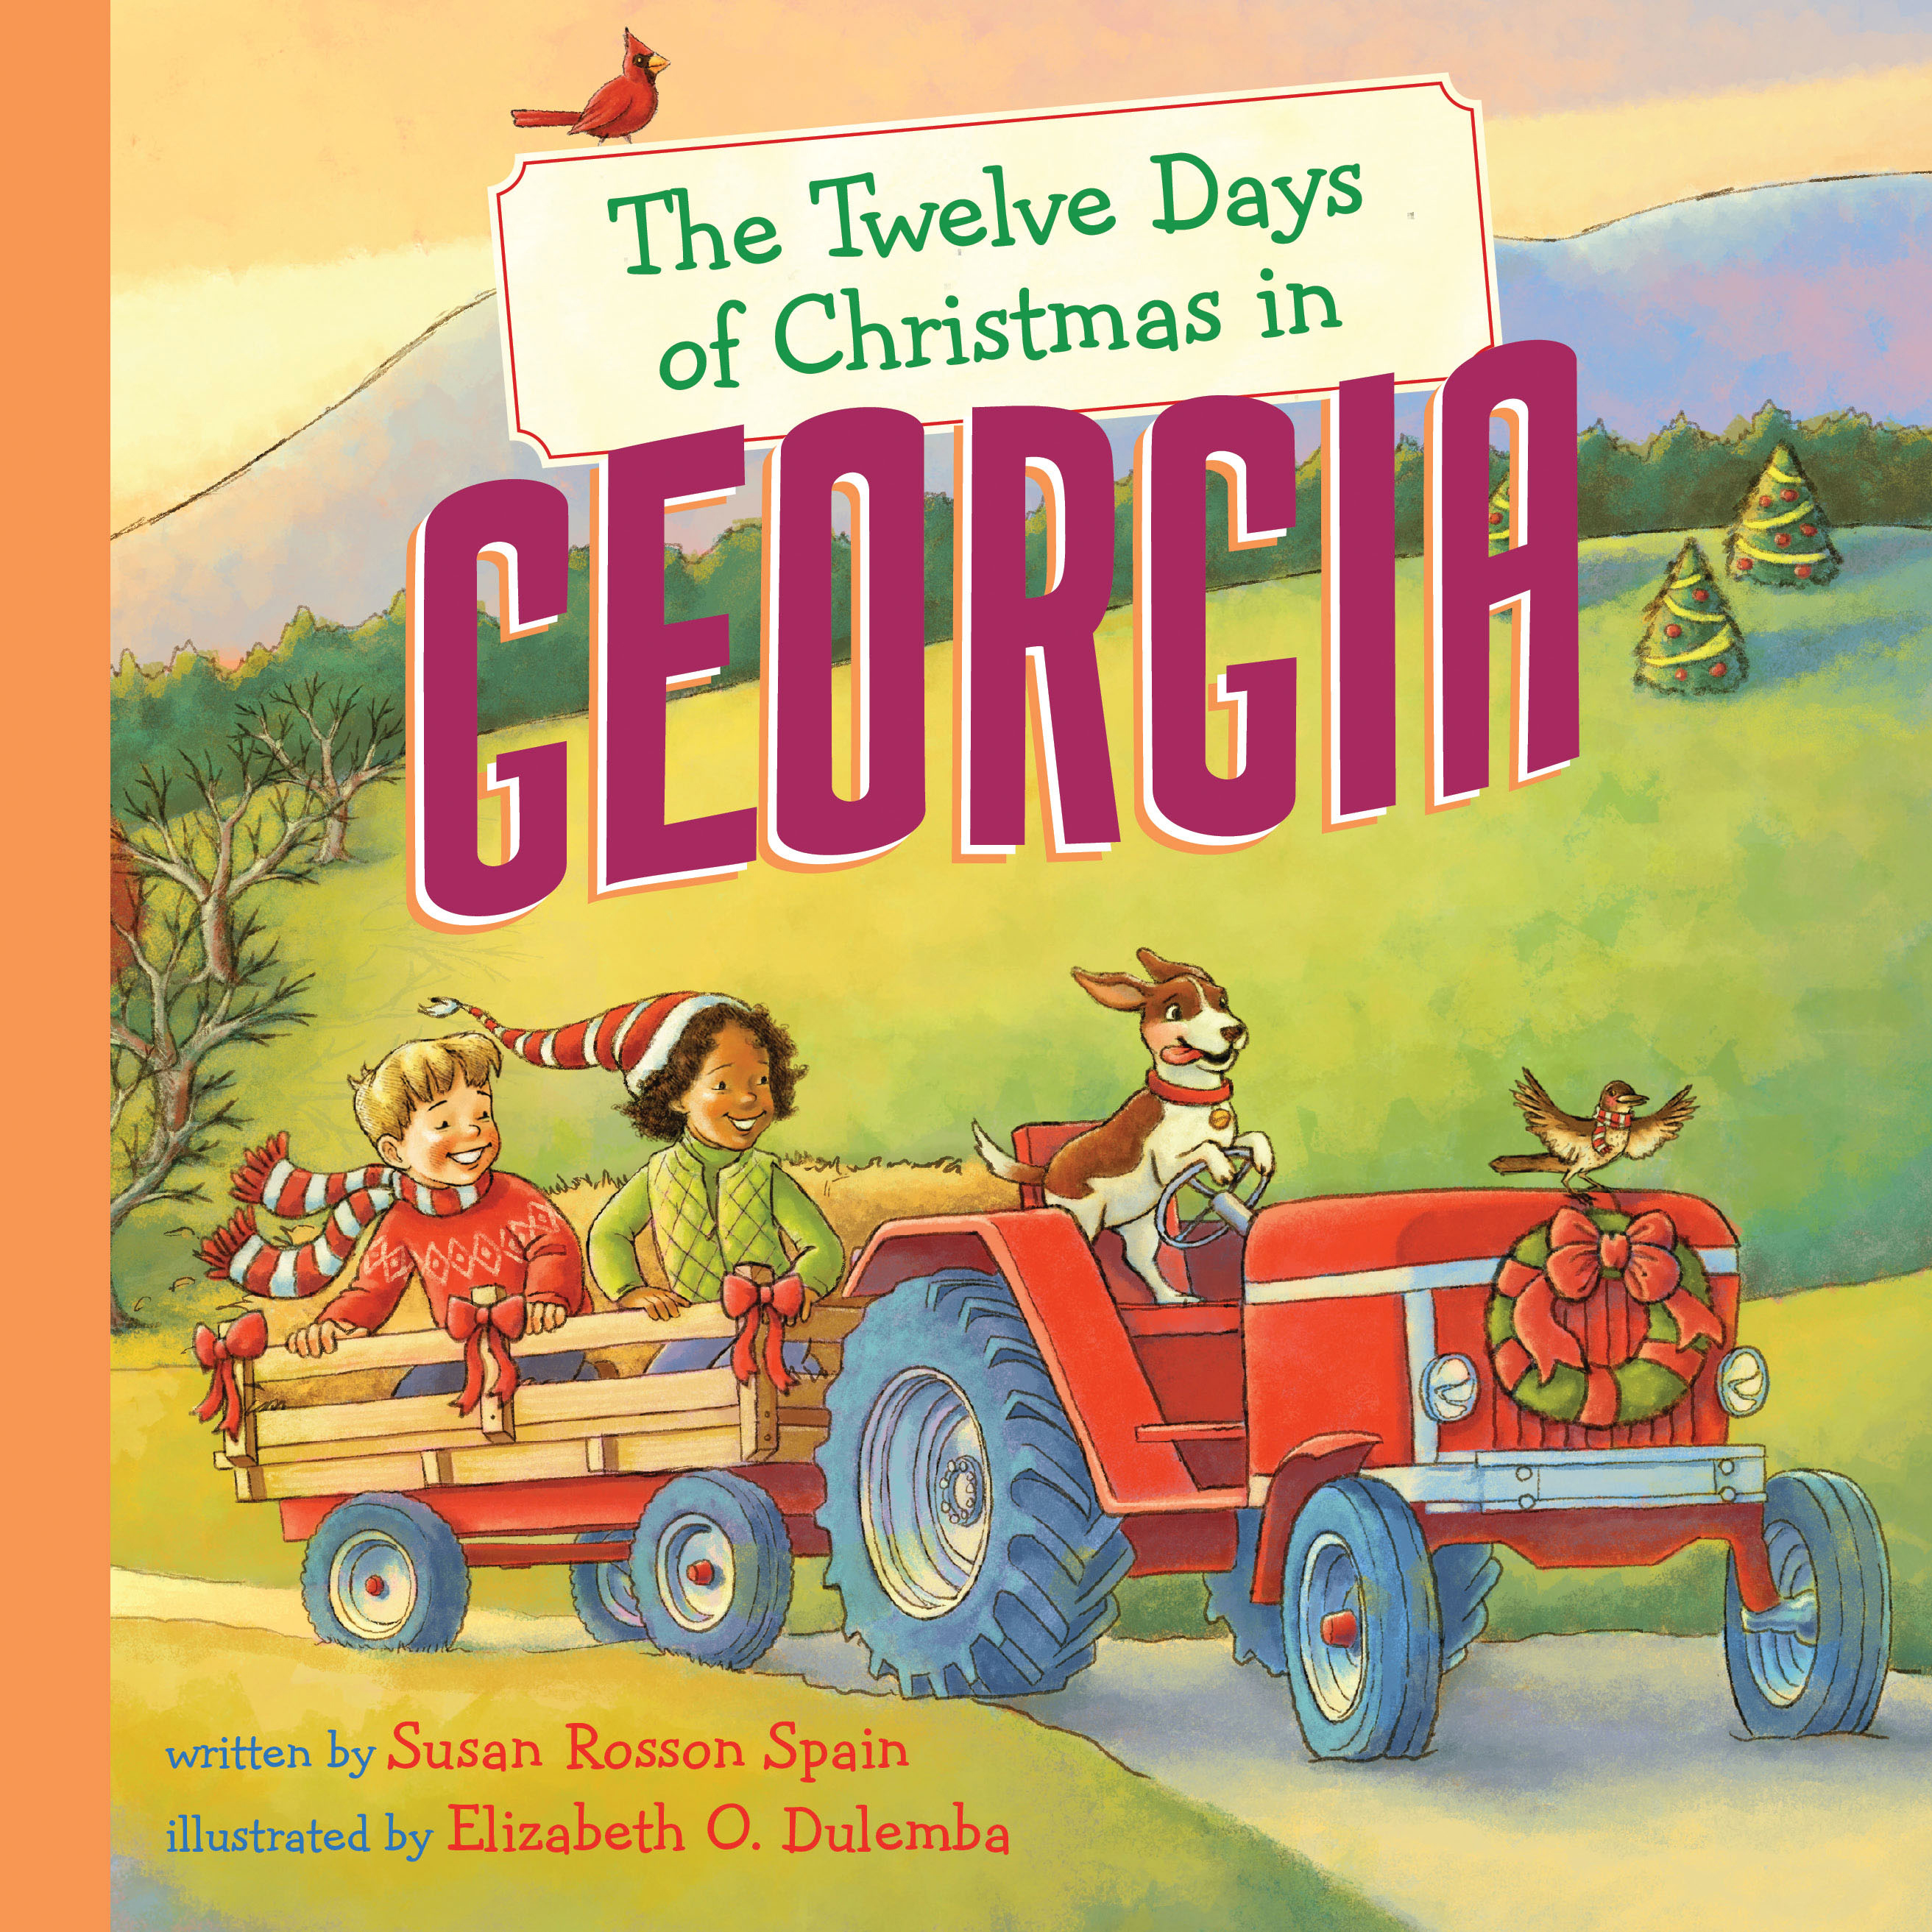 download the cover big 2mb - 12 Days Of Christmas Book